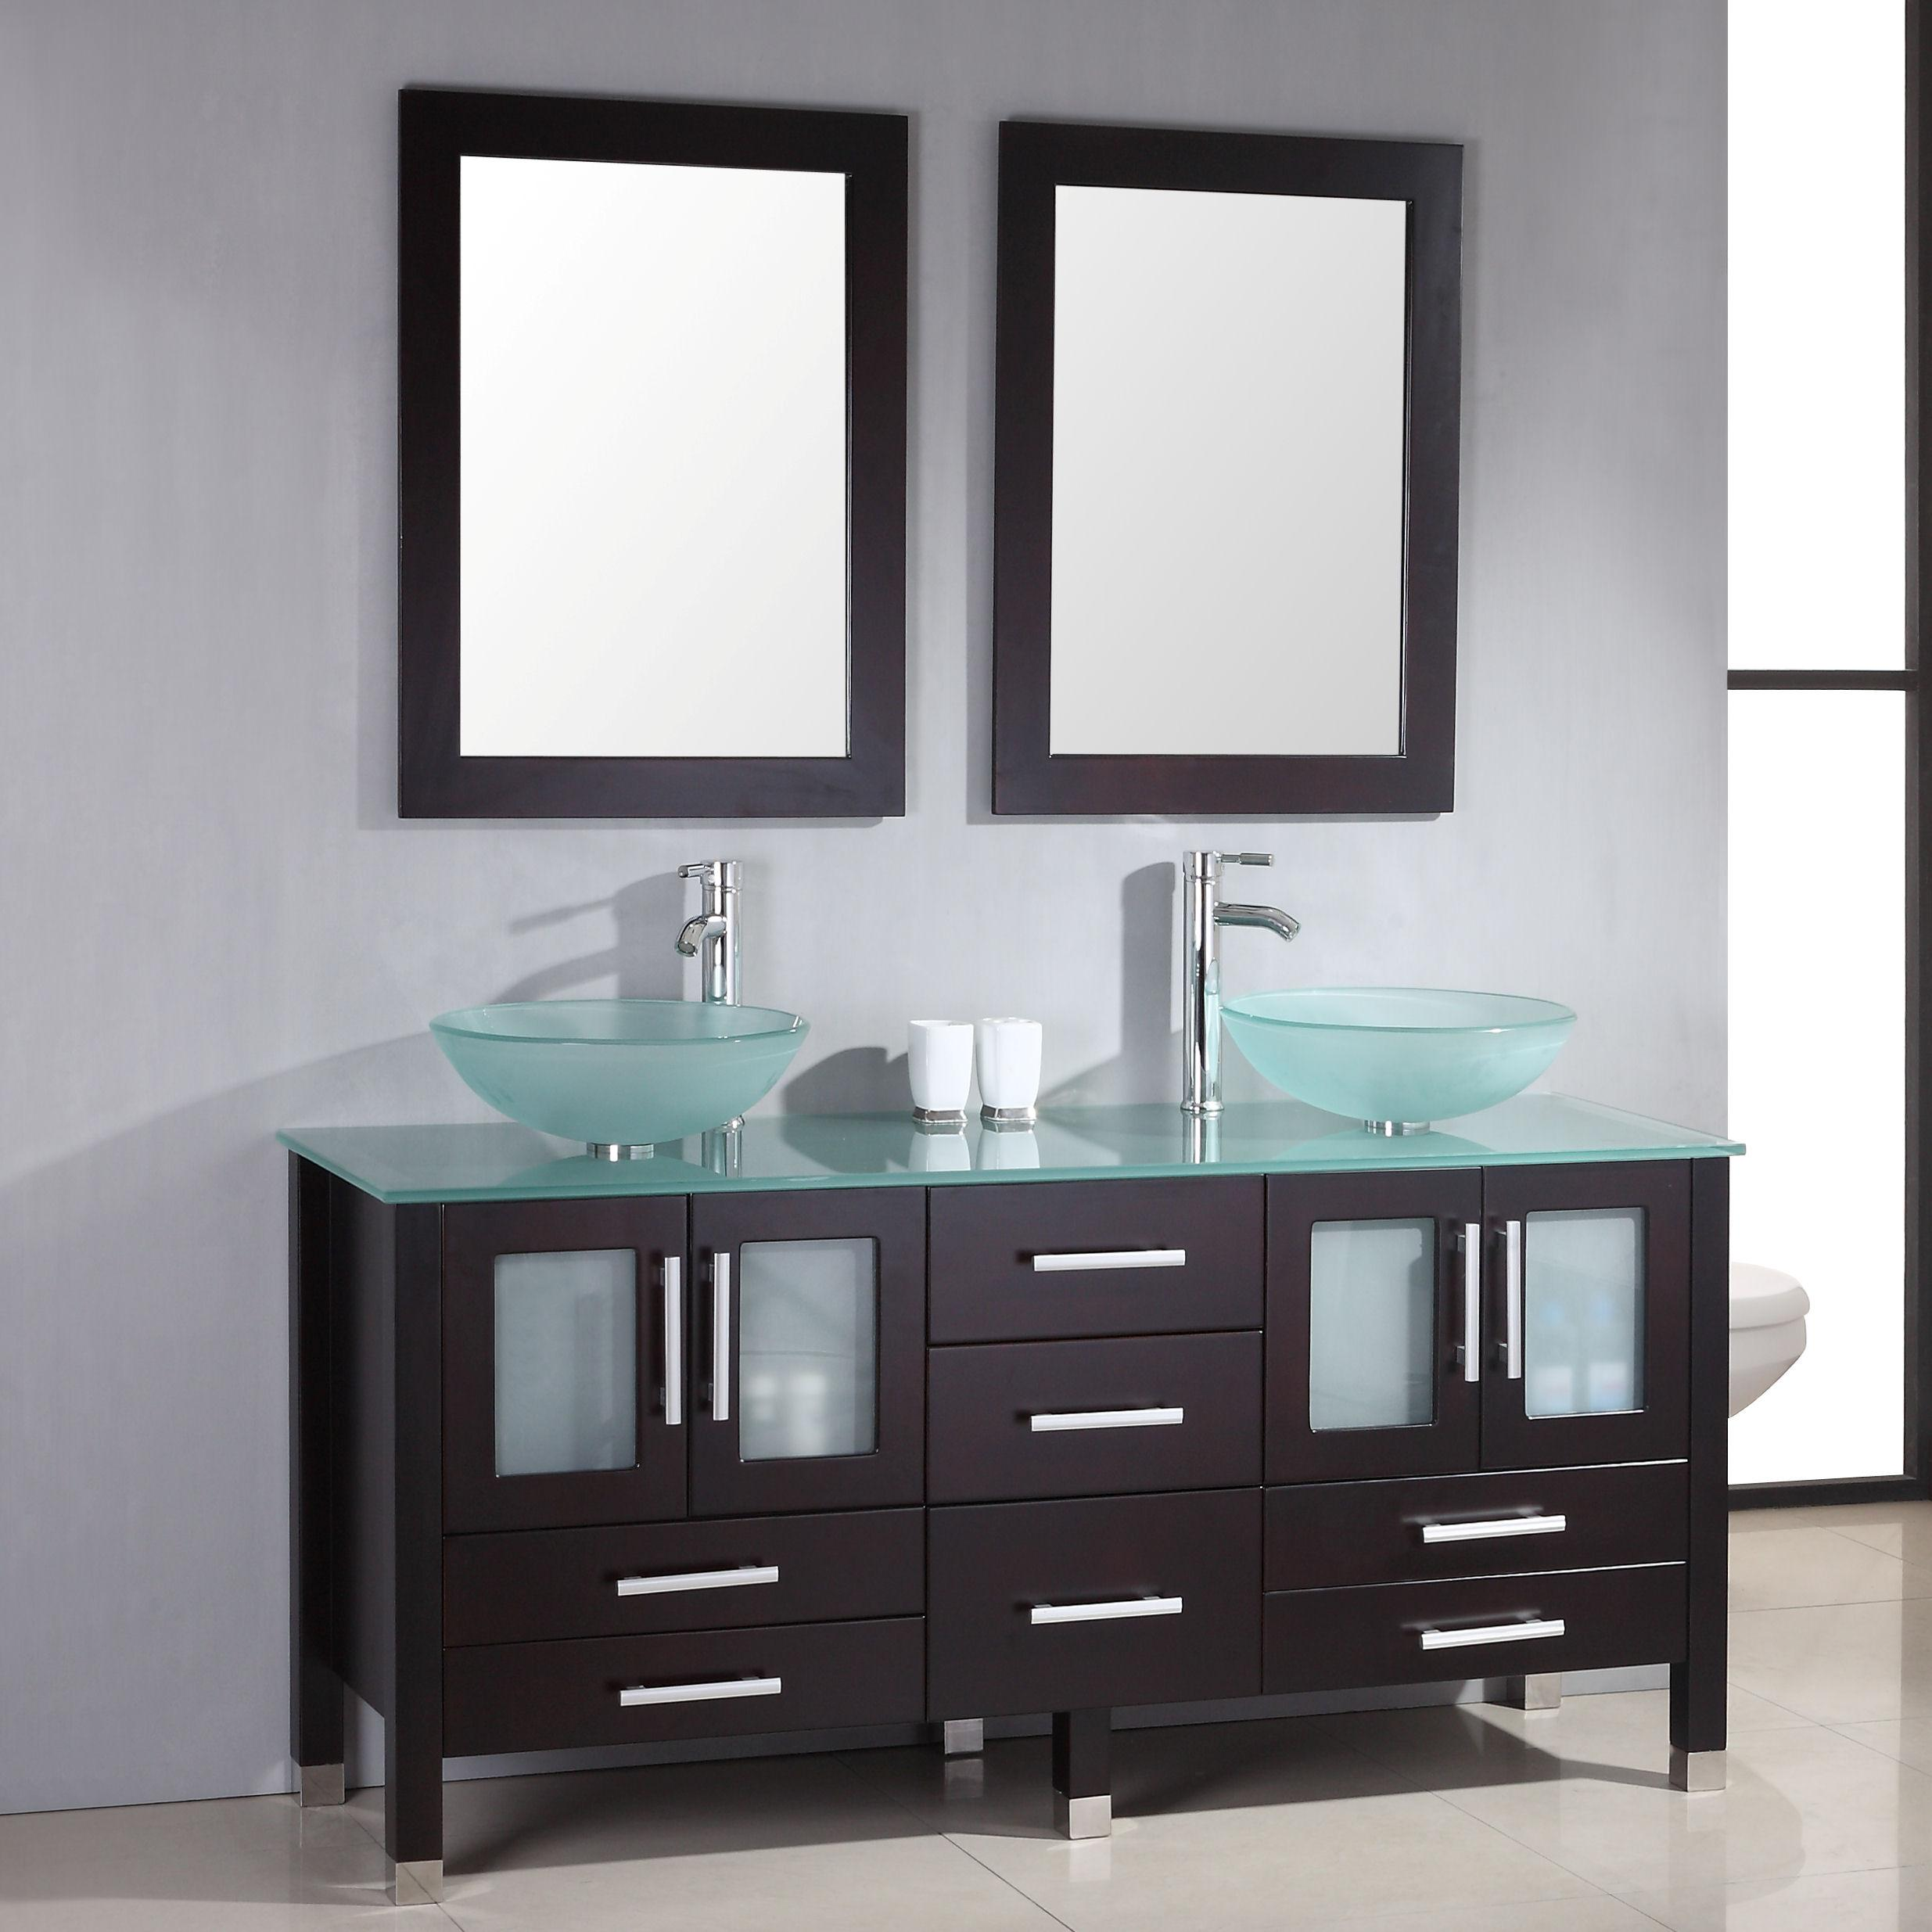 foremost bathroom on inbath inch ideas of only top awesome style mahogany with vanity and files in trends tops cabinet ashburn vanities stunning